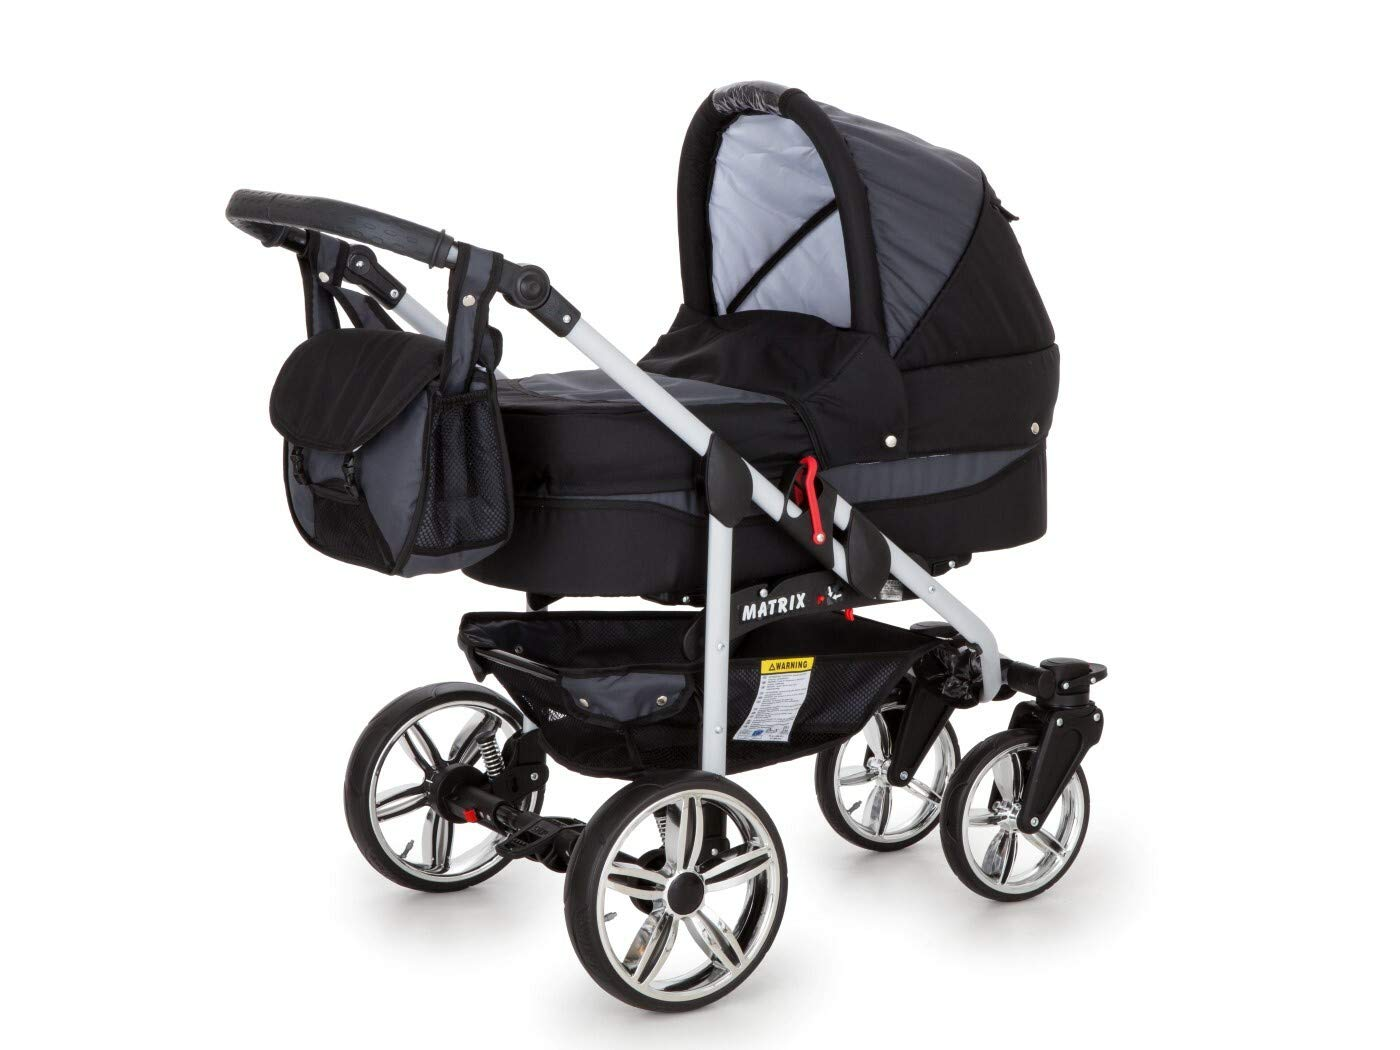 Travel System Stroller Pram Pushchair 2in1 3in1 Set Isofix X-Car by SaintBaby Black & Check 3in1 with Baby seat SaintBaby 3in1 or 2in1 Selectable. At 3in1 you will also receive the car seat (baby seat). Of course you get the baby tub (classic pram) as well as the buggy attachment (sports seat) no matter if 2in1 or 3in1. The car naturally complies with the EU safety standard EN1888. During production and before shipment, each wagon is carefully inspected so that you can be sure you have one of the best wagons. Saintbaby stands for all-in-one carefree packages, so you will also receive a diaper bag in the same colour as the car as well as rain and insect protection free of charge. With all the colours of this pram you will find the pram of your dreams. 8